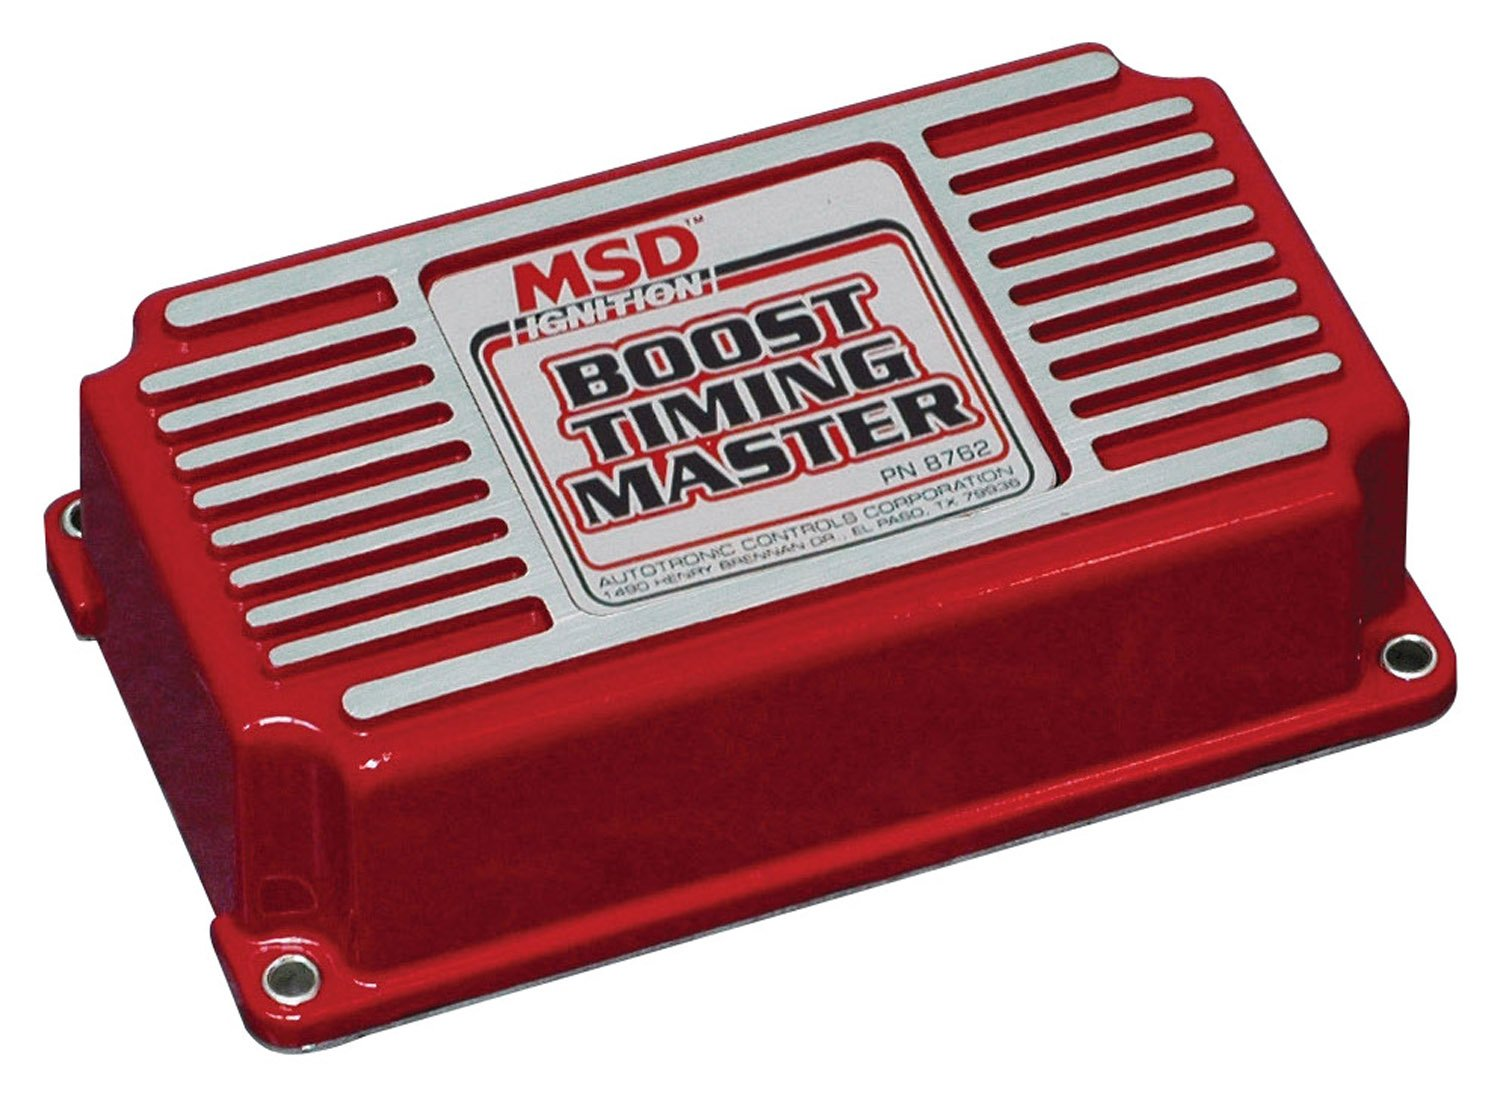 MSD 8762 Boost Timing Master for use with MSD Ignition Control MSD